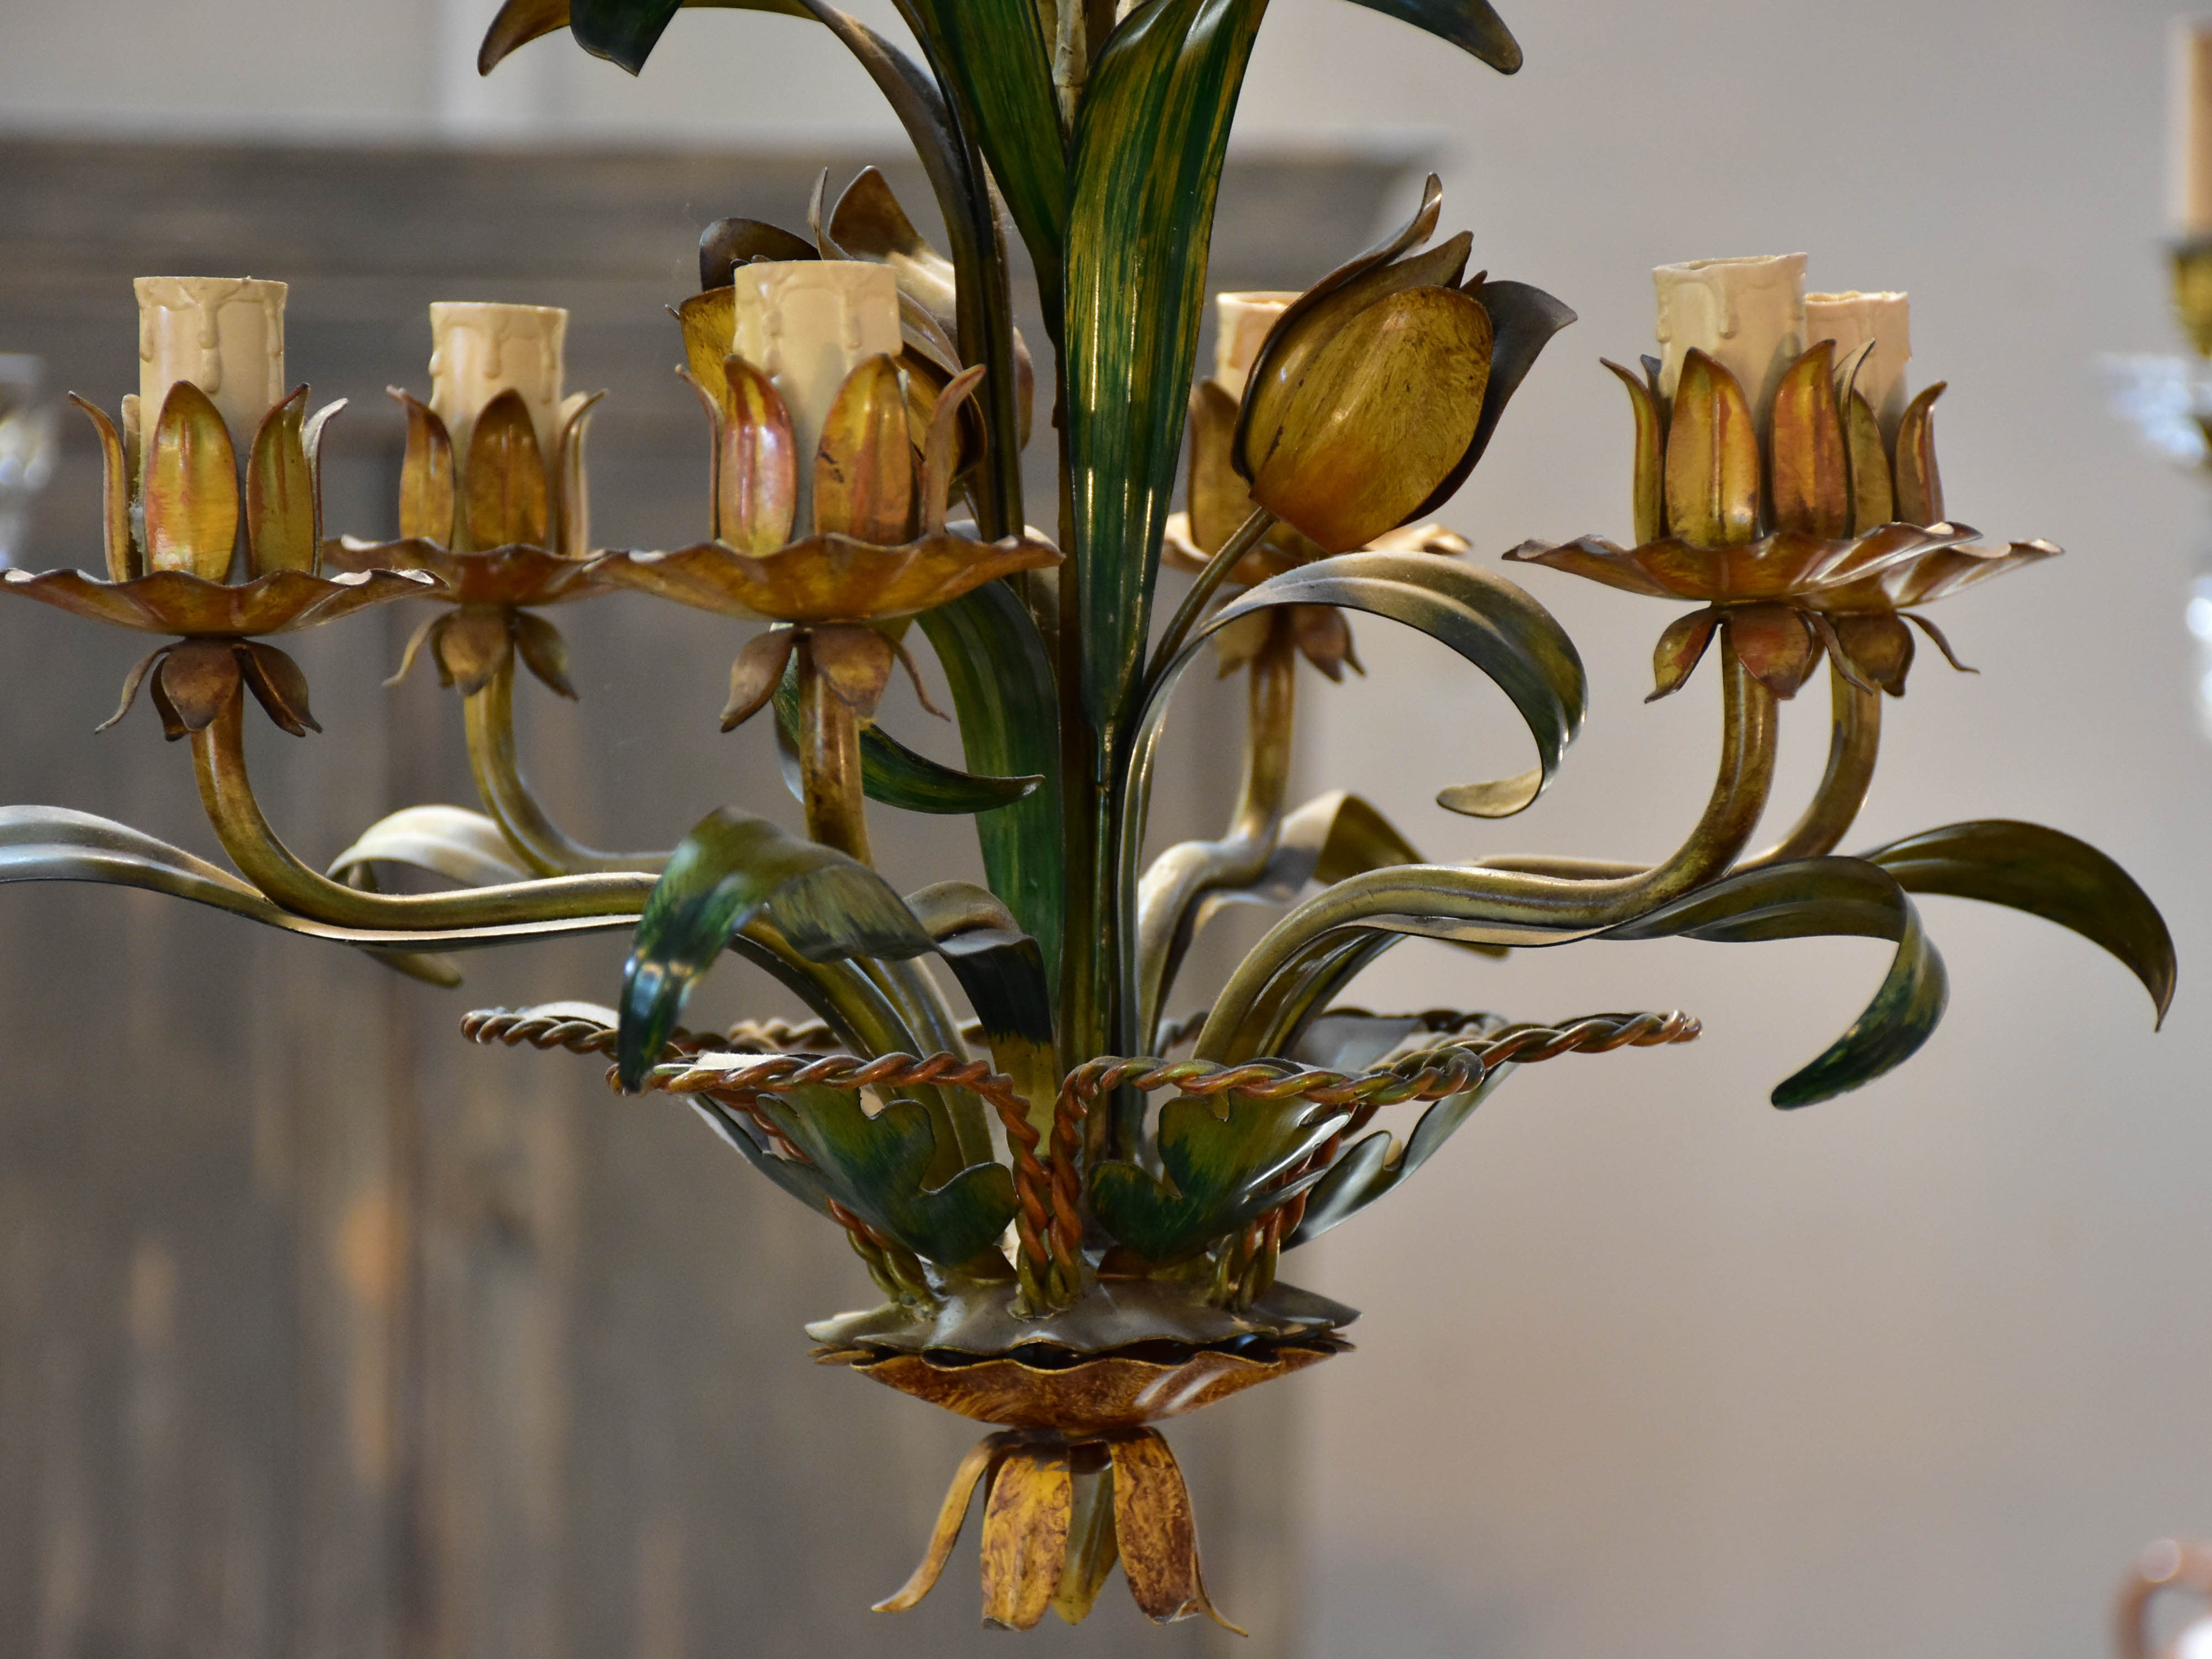 Vintage French lustre with flowers